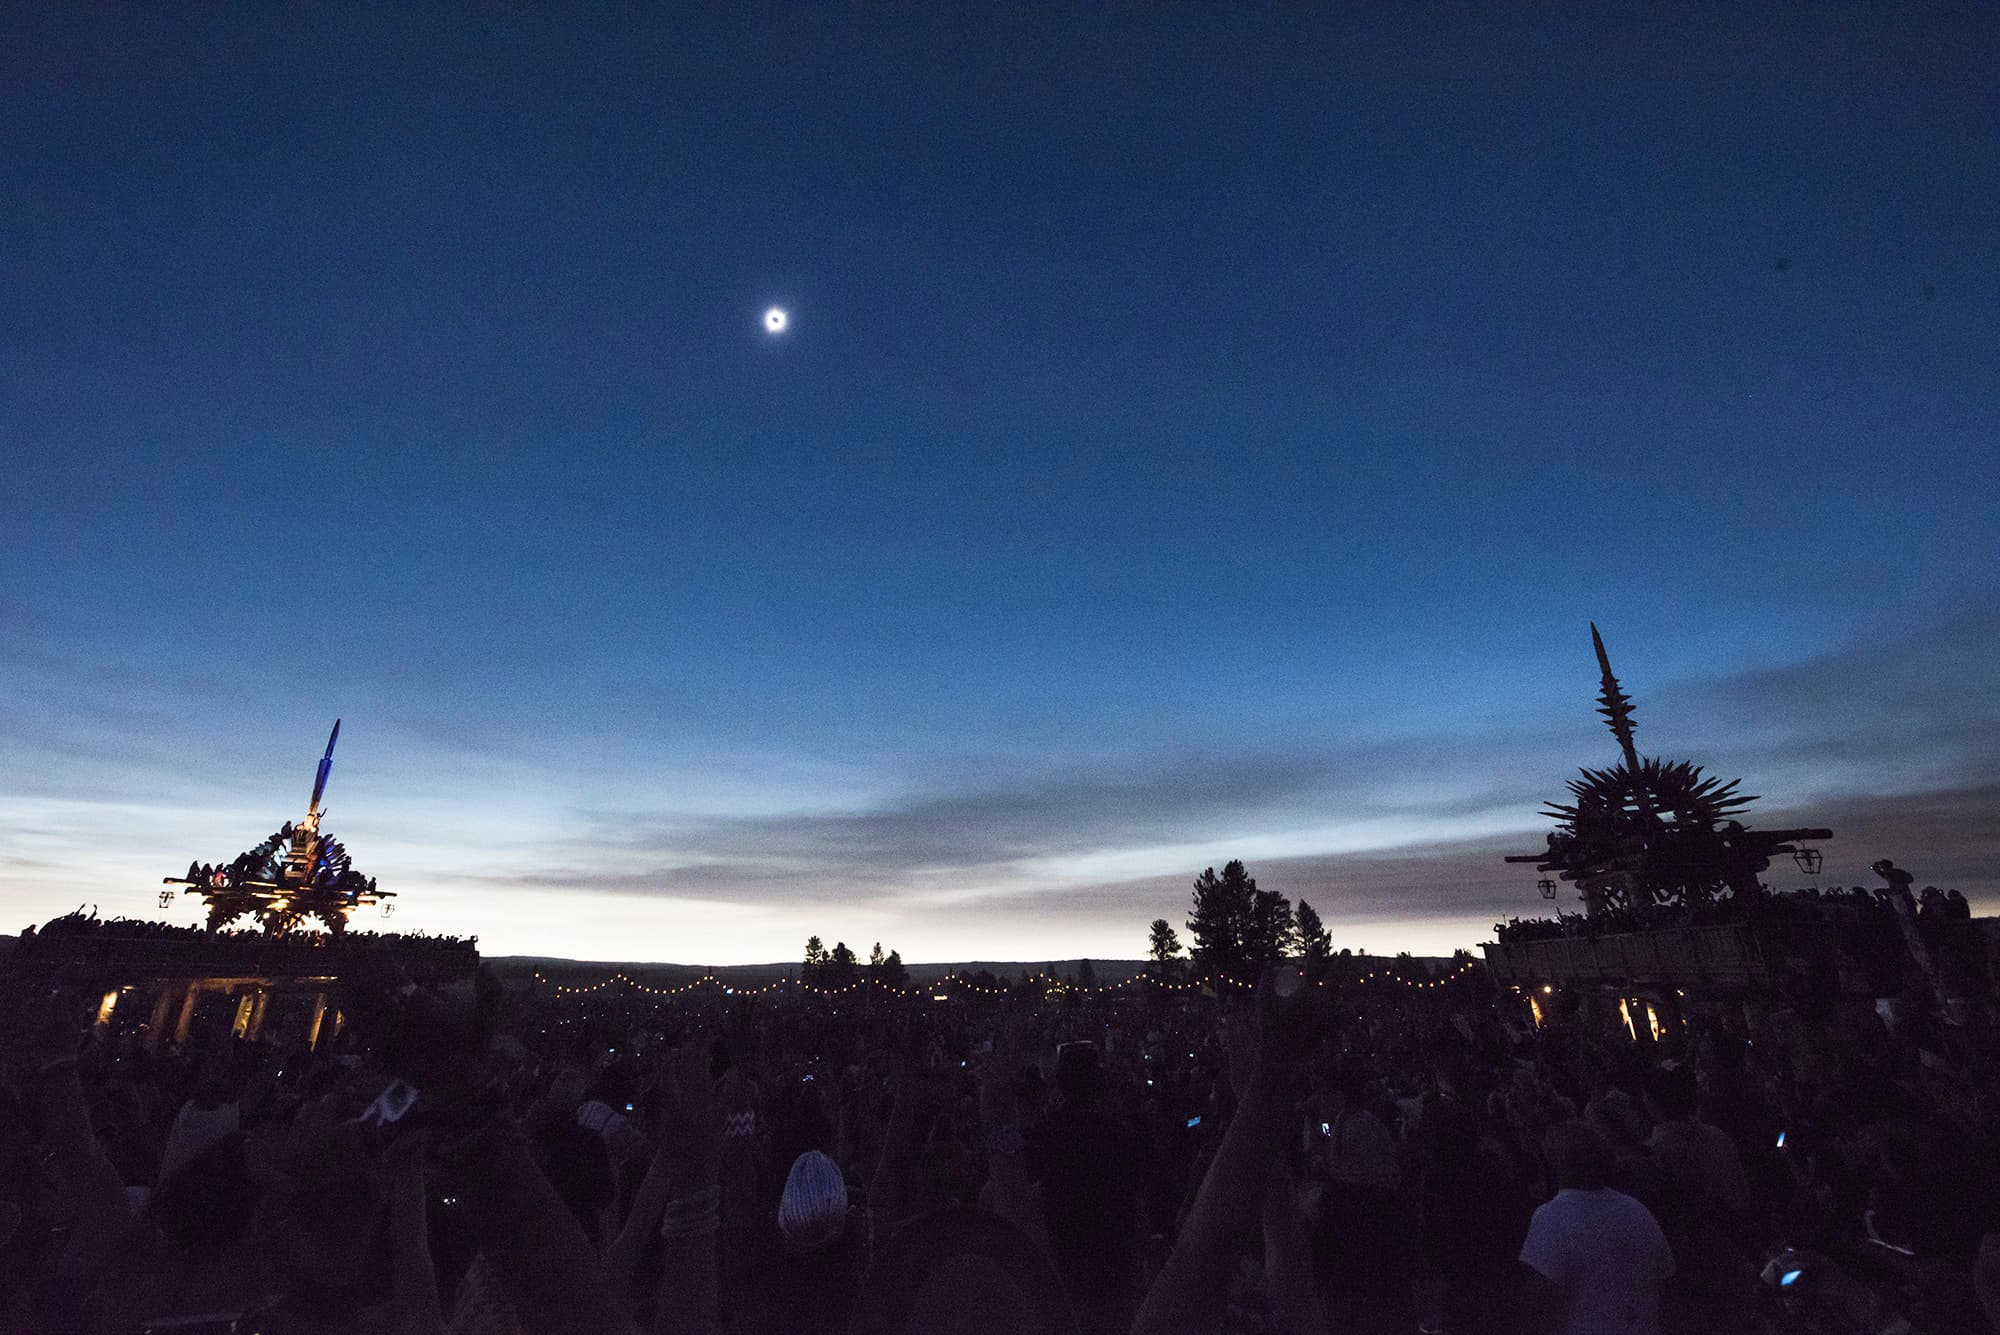 A view of the solar eclipse at the Solar Temples at Big Summit Prairie ranch in Oregon's Ochoco National Forest.—AFP